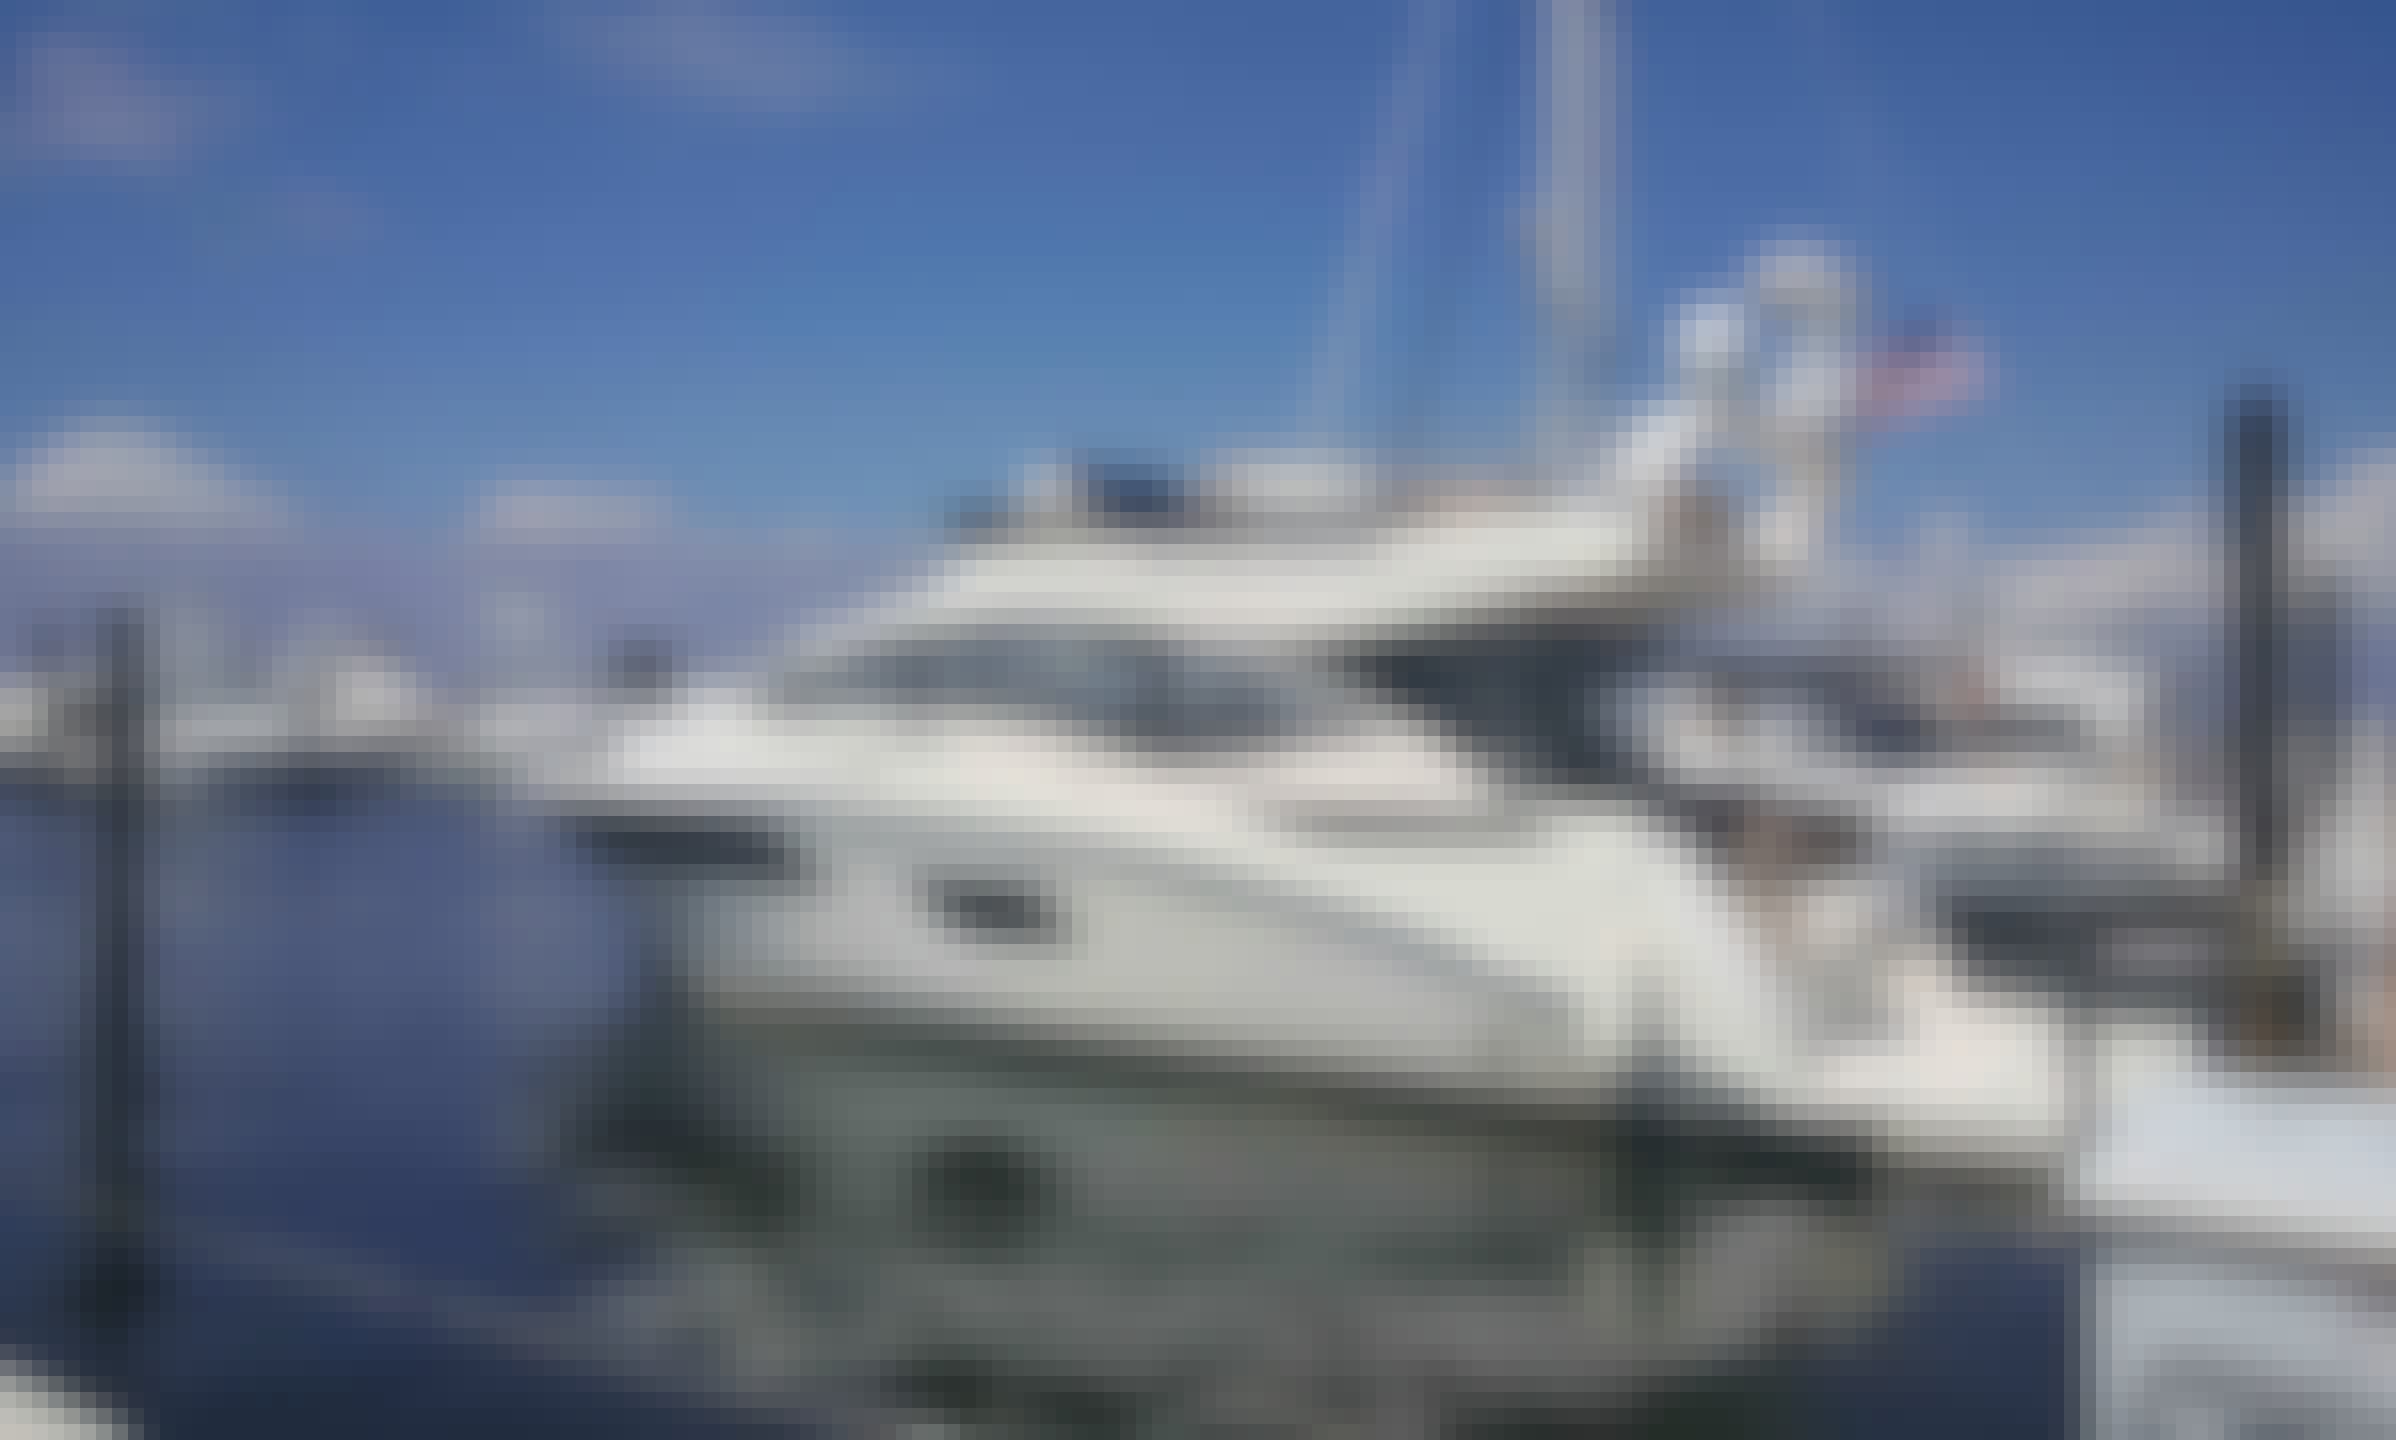 44' Motor Yacht Charter available in Atlantic Highlands, New Jersey